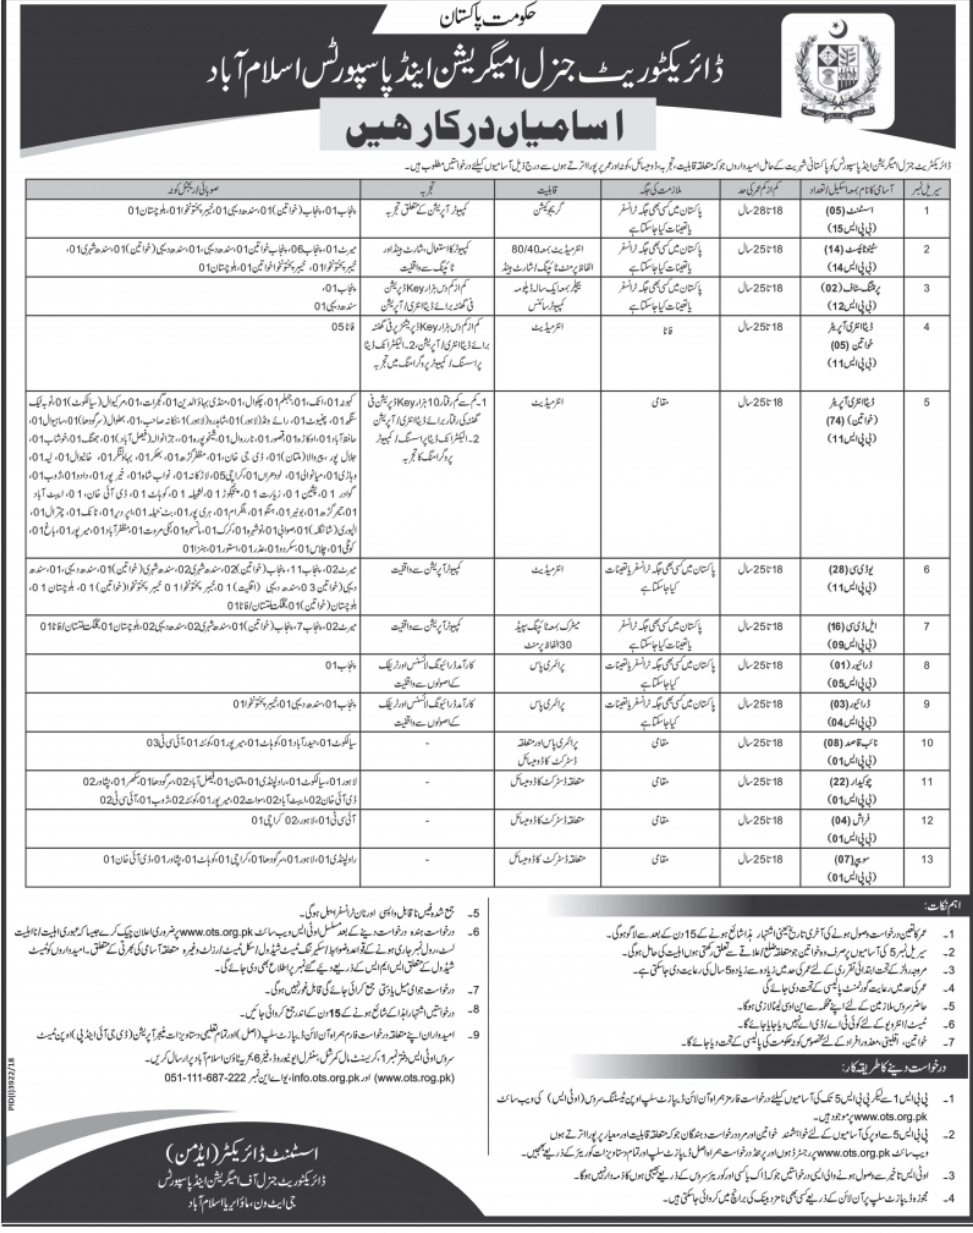 Directorate General of Immigration and Passport Jobs 2019 OTS Application Form